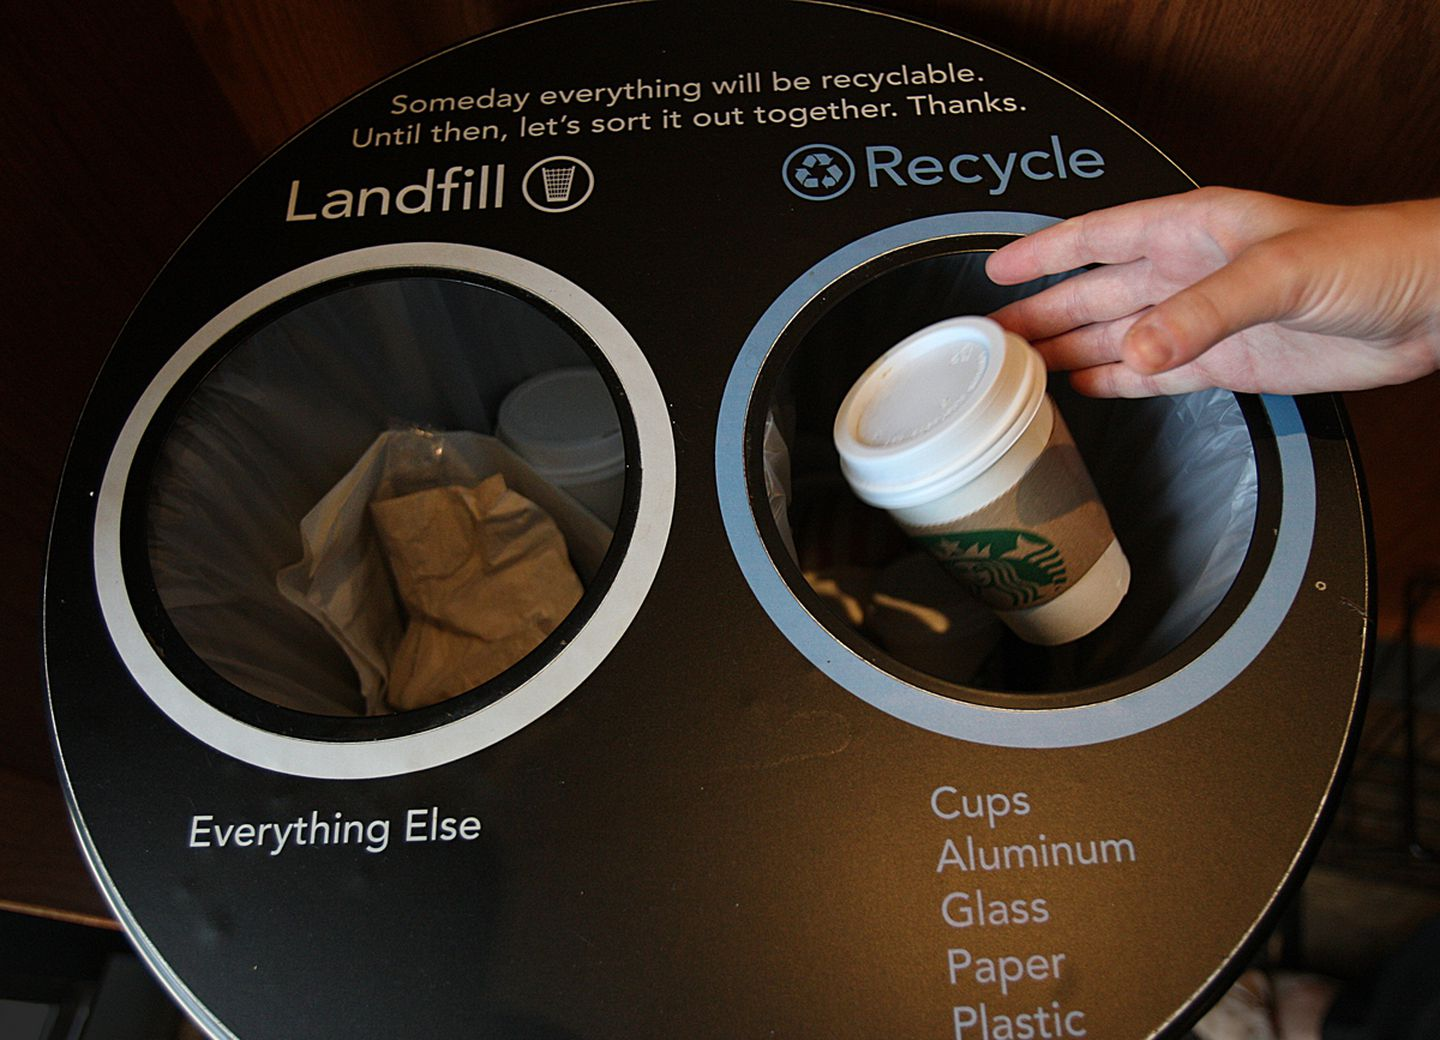 A Starbucks bin with recycling option